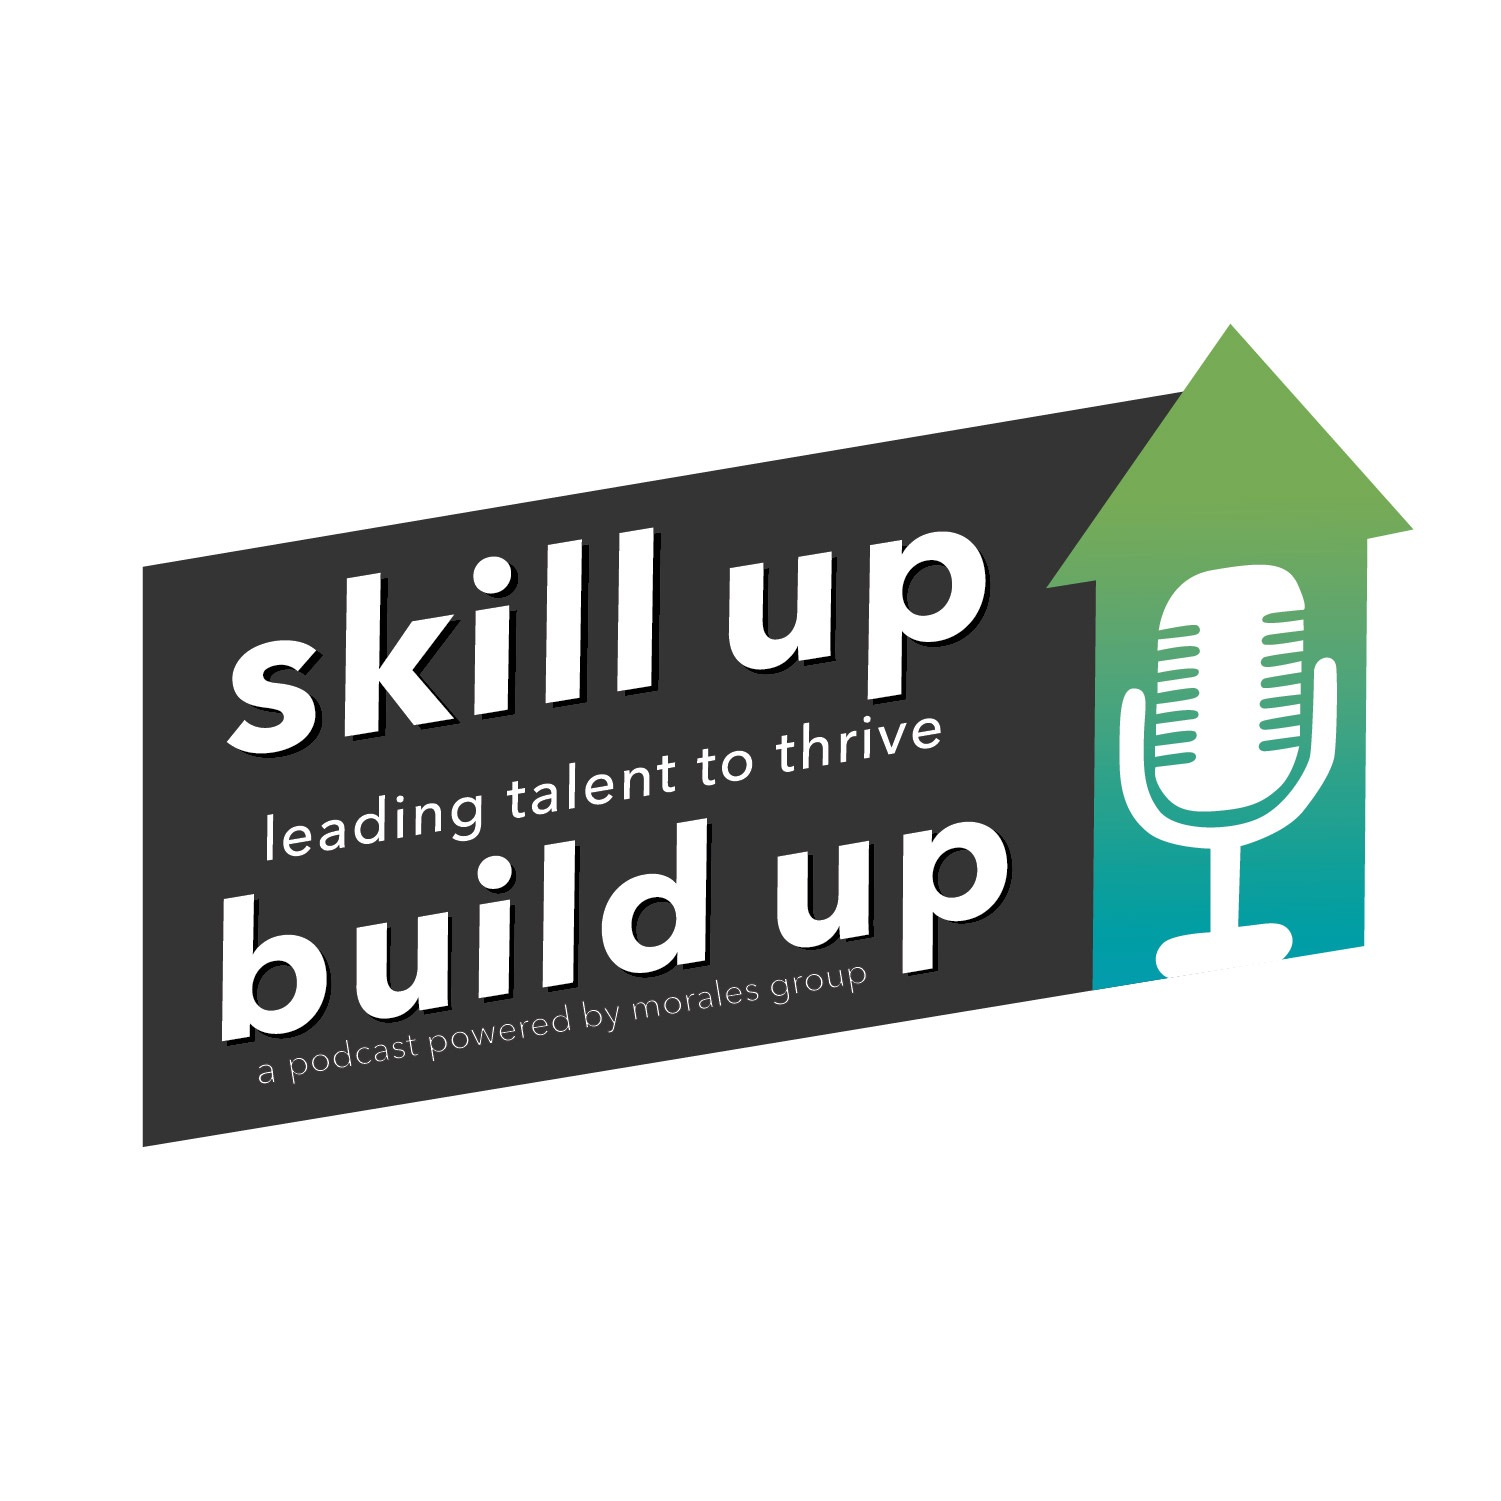 """Episode 48: """"In the Game of Business, You Either Grow or You Die"""" - Sarah K. Robinson, Part II"""